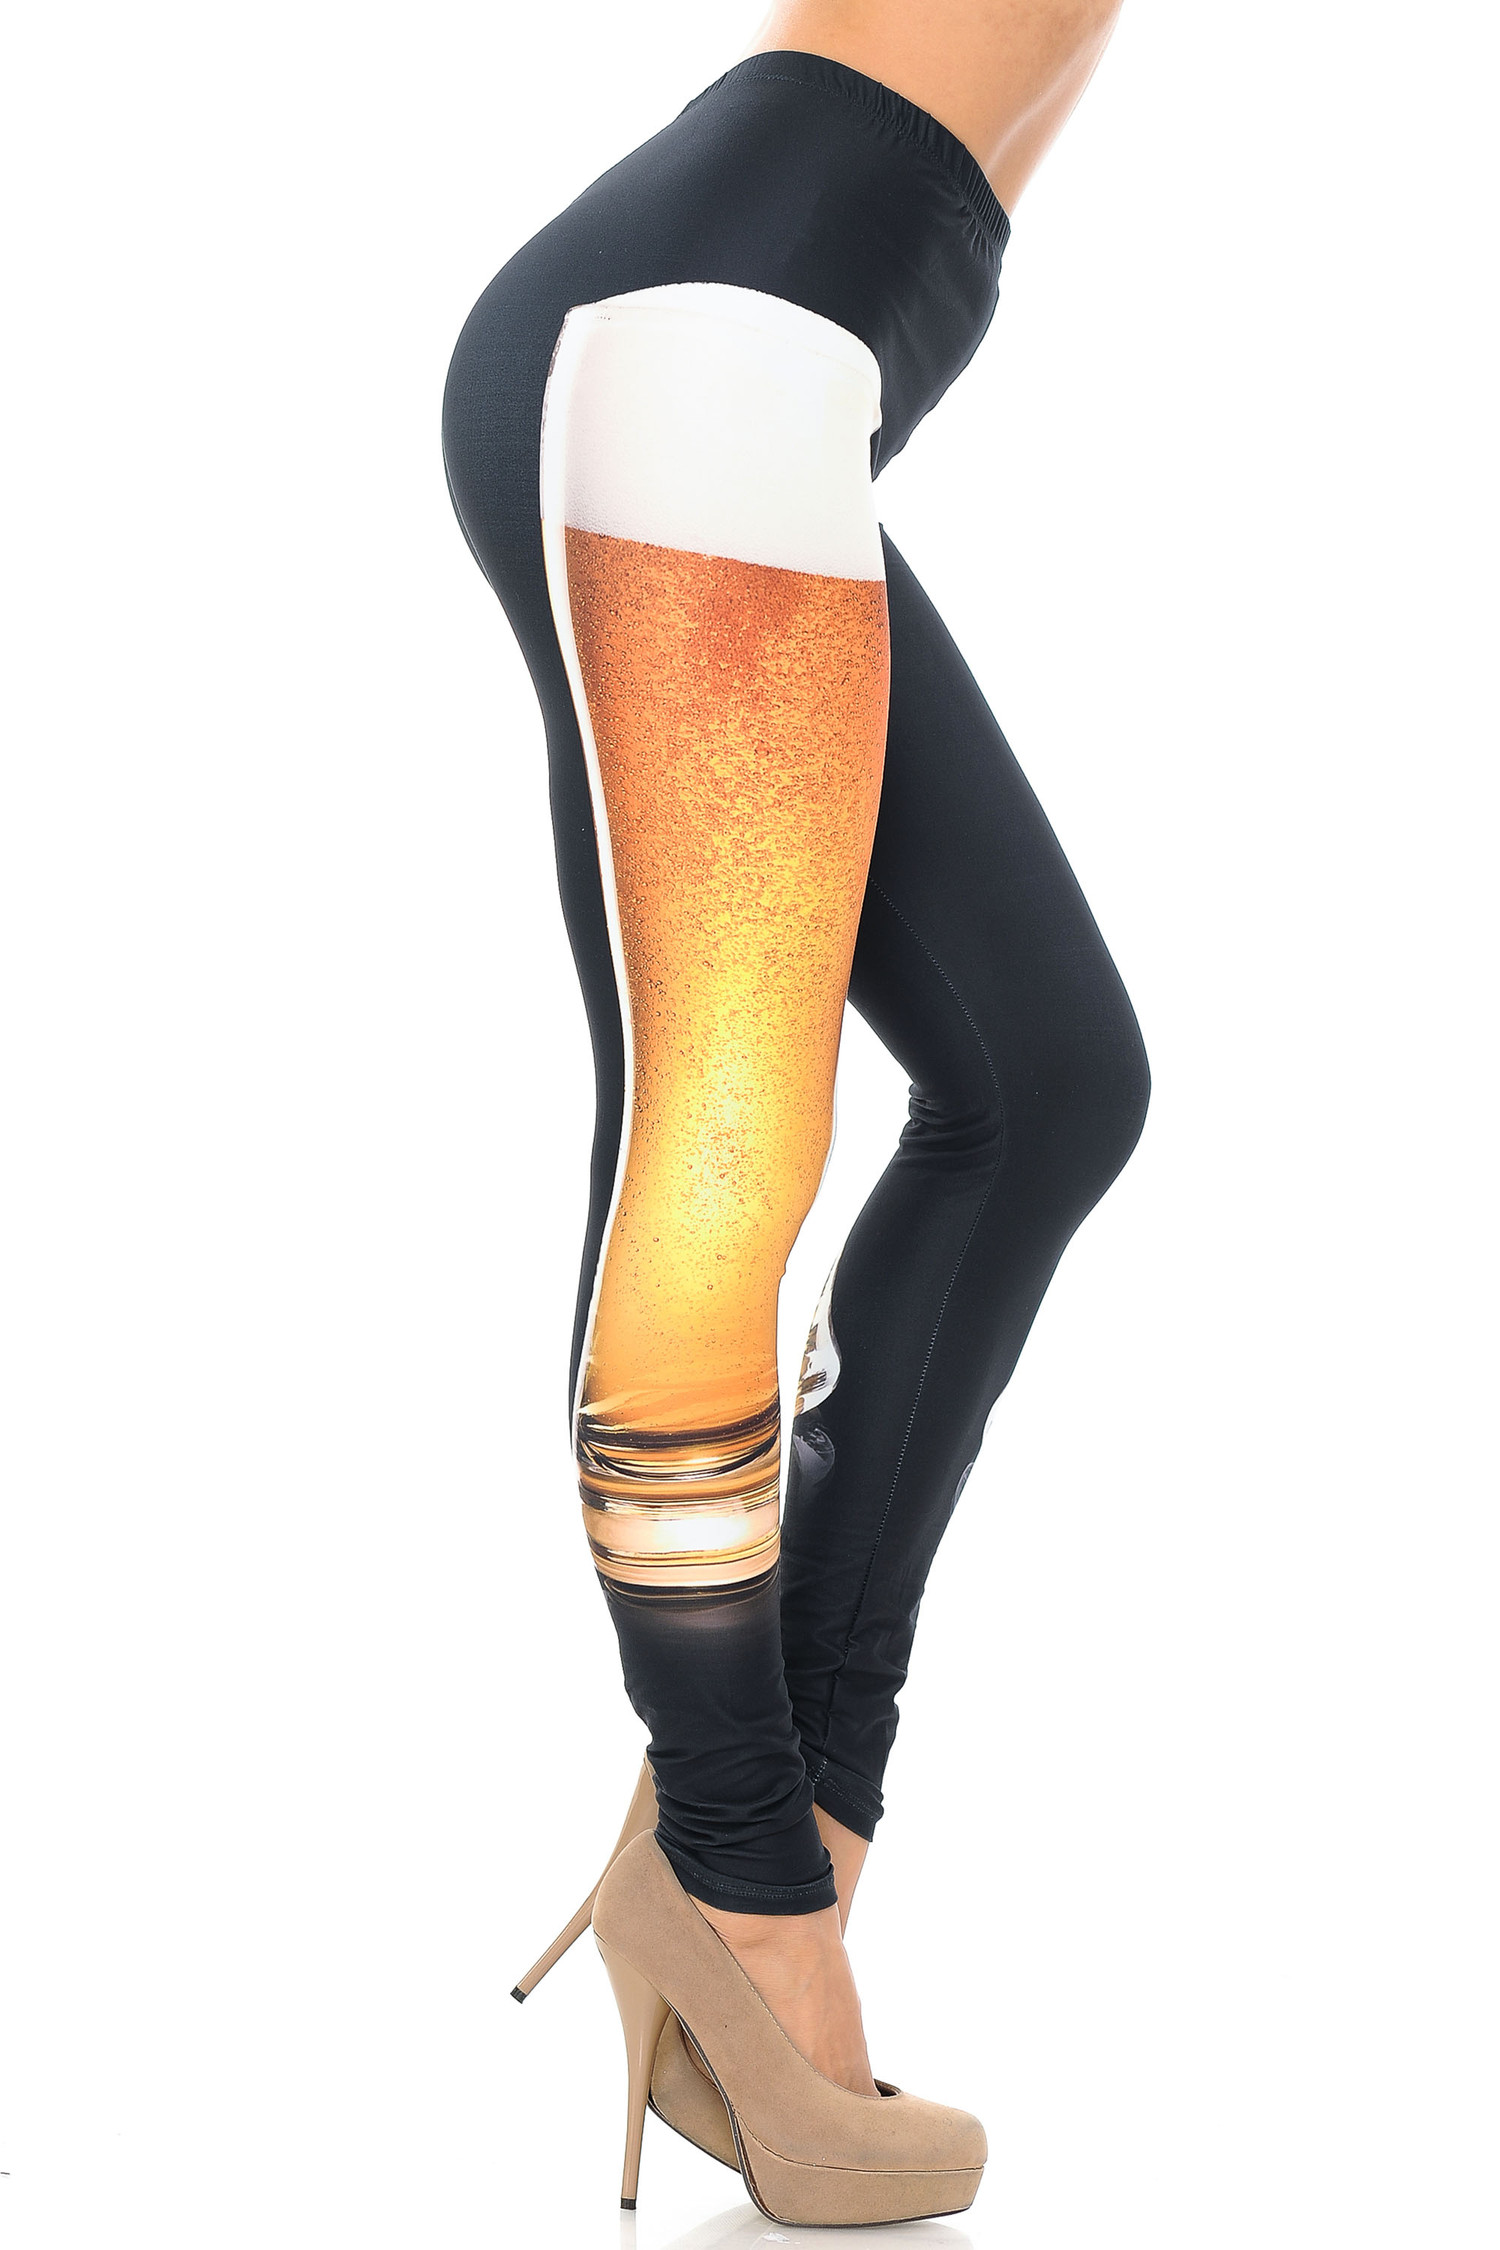 Creamy Soft Draft Beer Plus Size Leggings - USA Fashion™